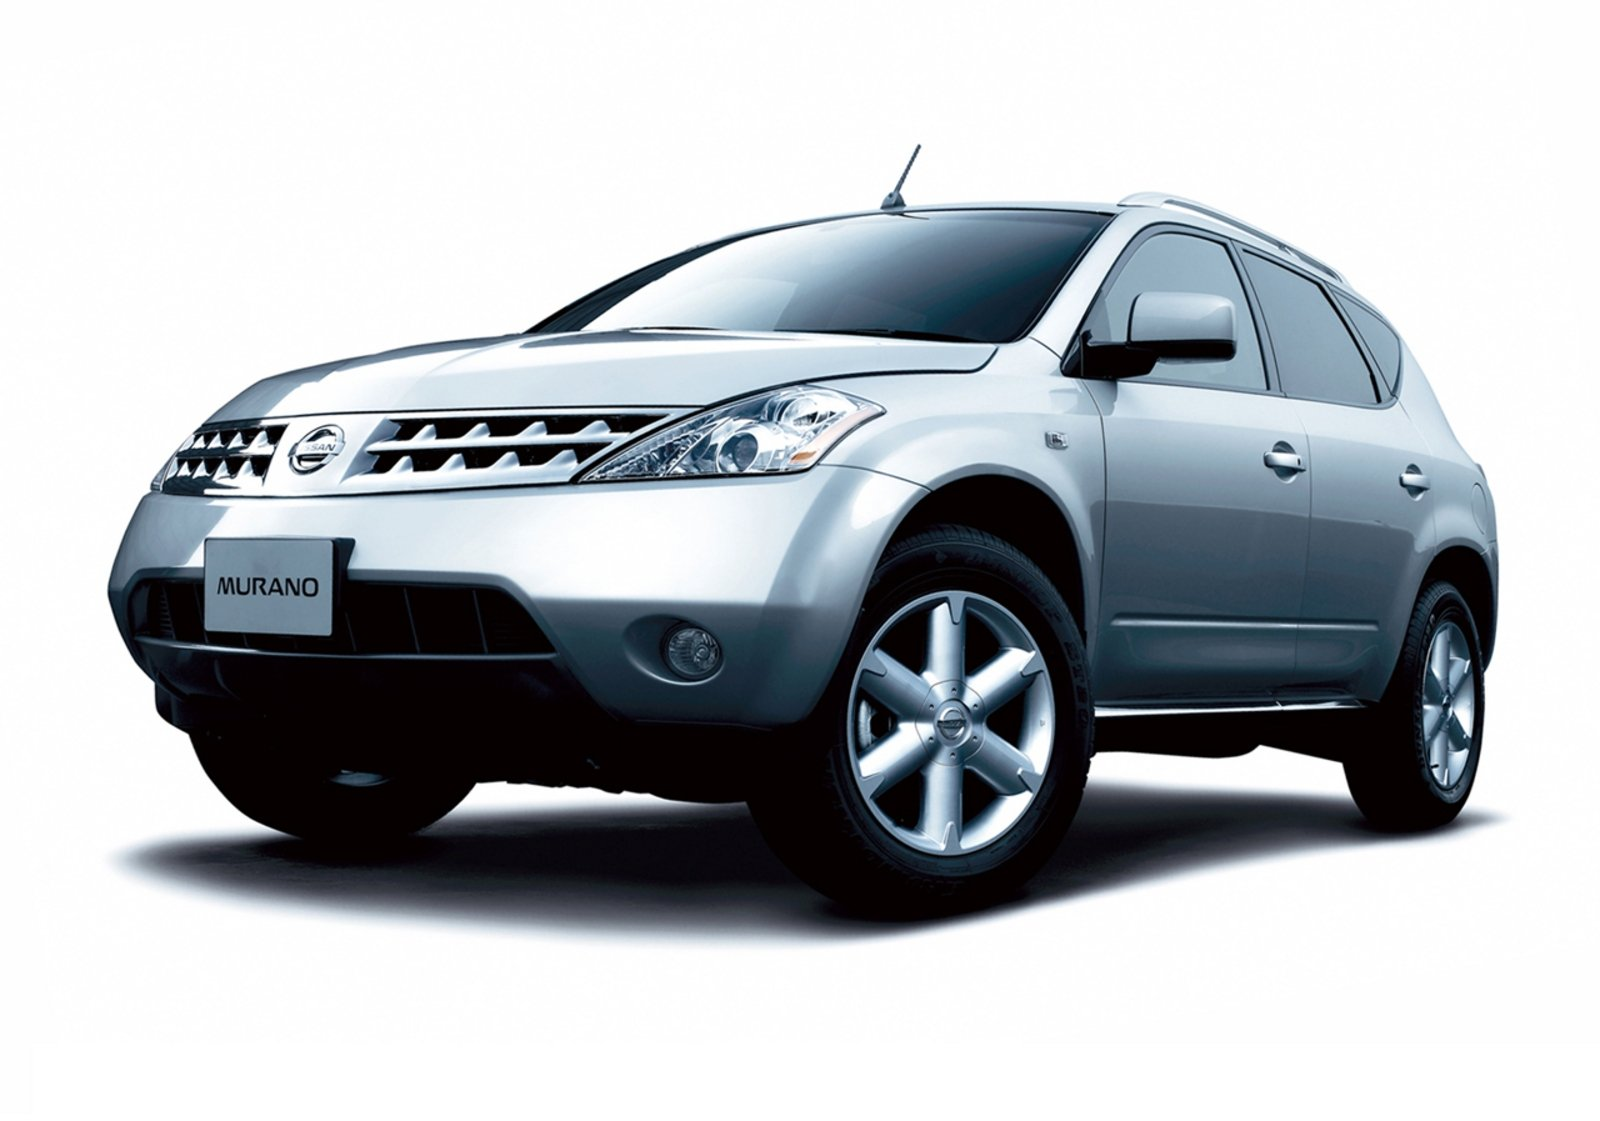 2007 Nissan Murano Silver Edition News Top Speed